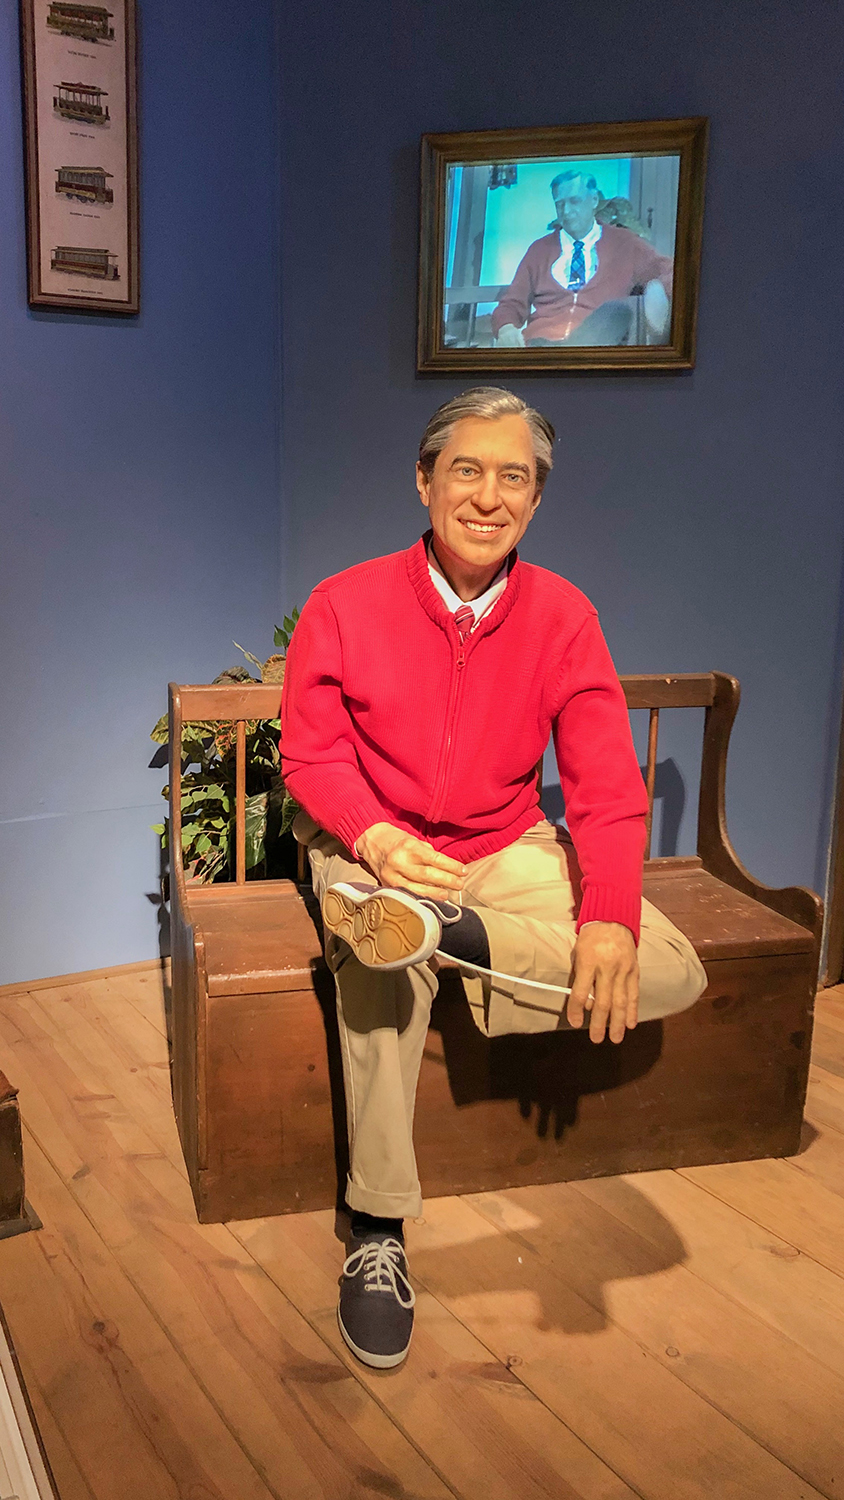 Mister Rogers' bench, on display in the Special Collections gallery.